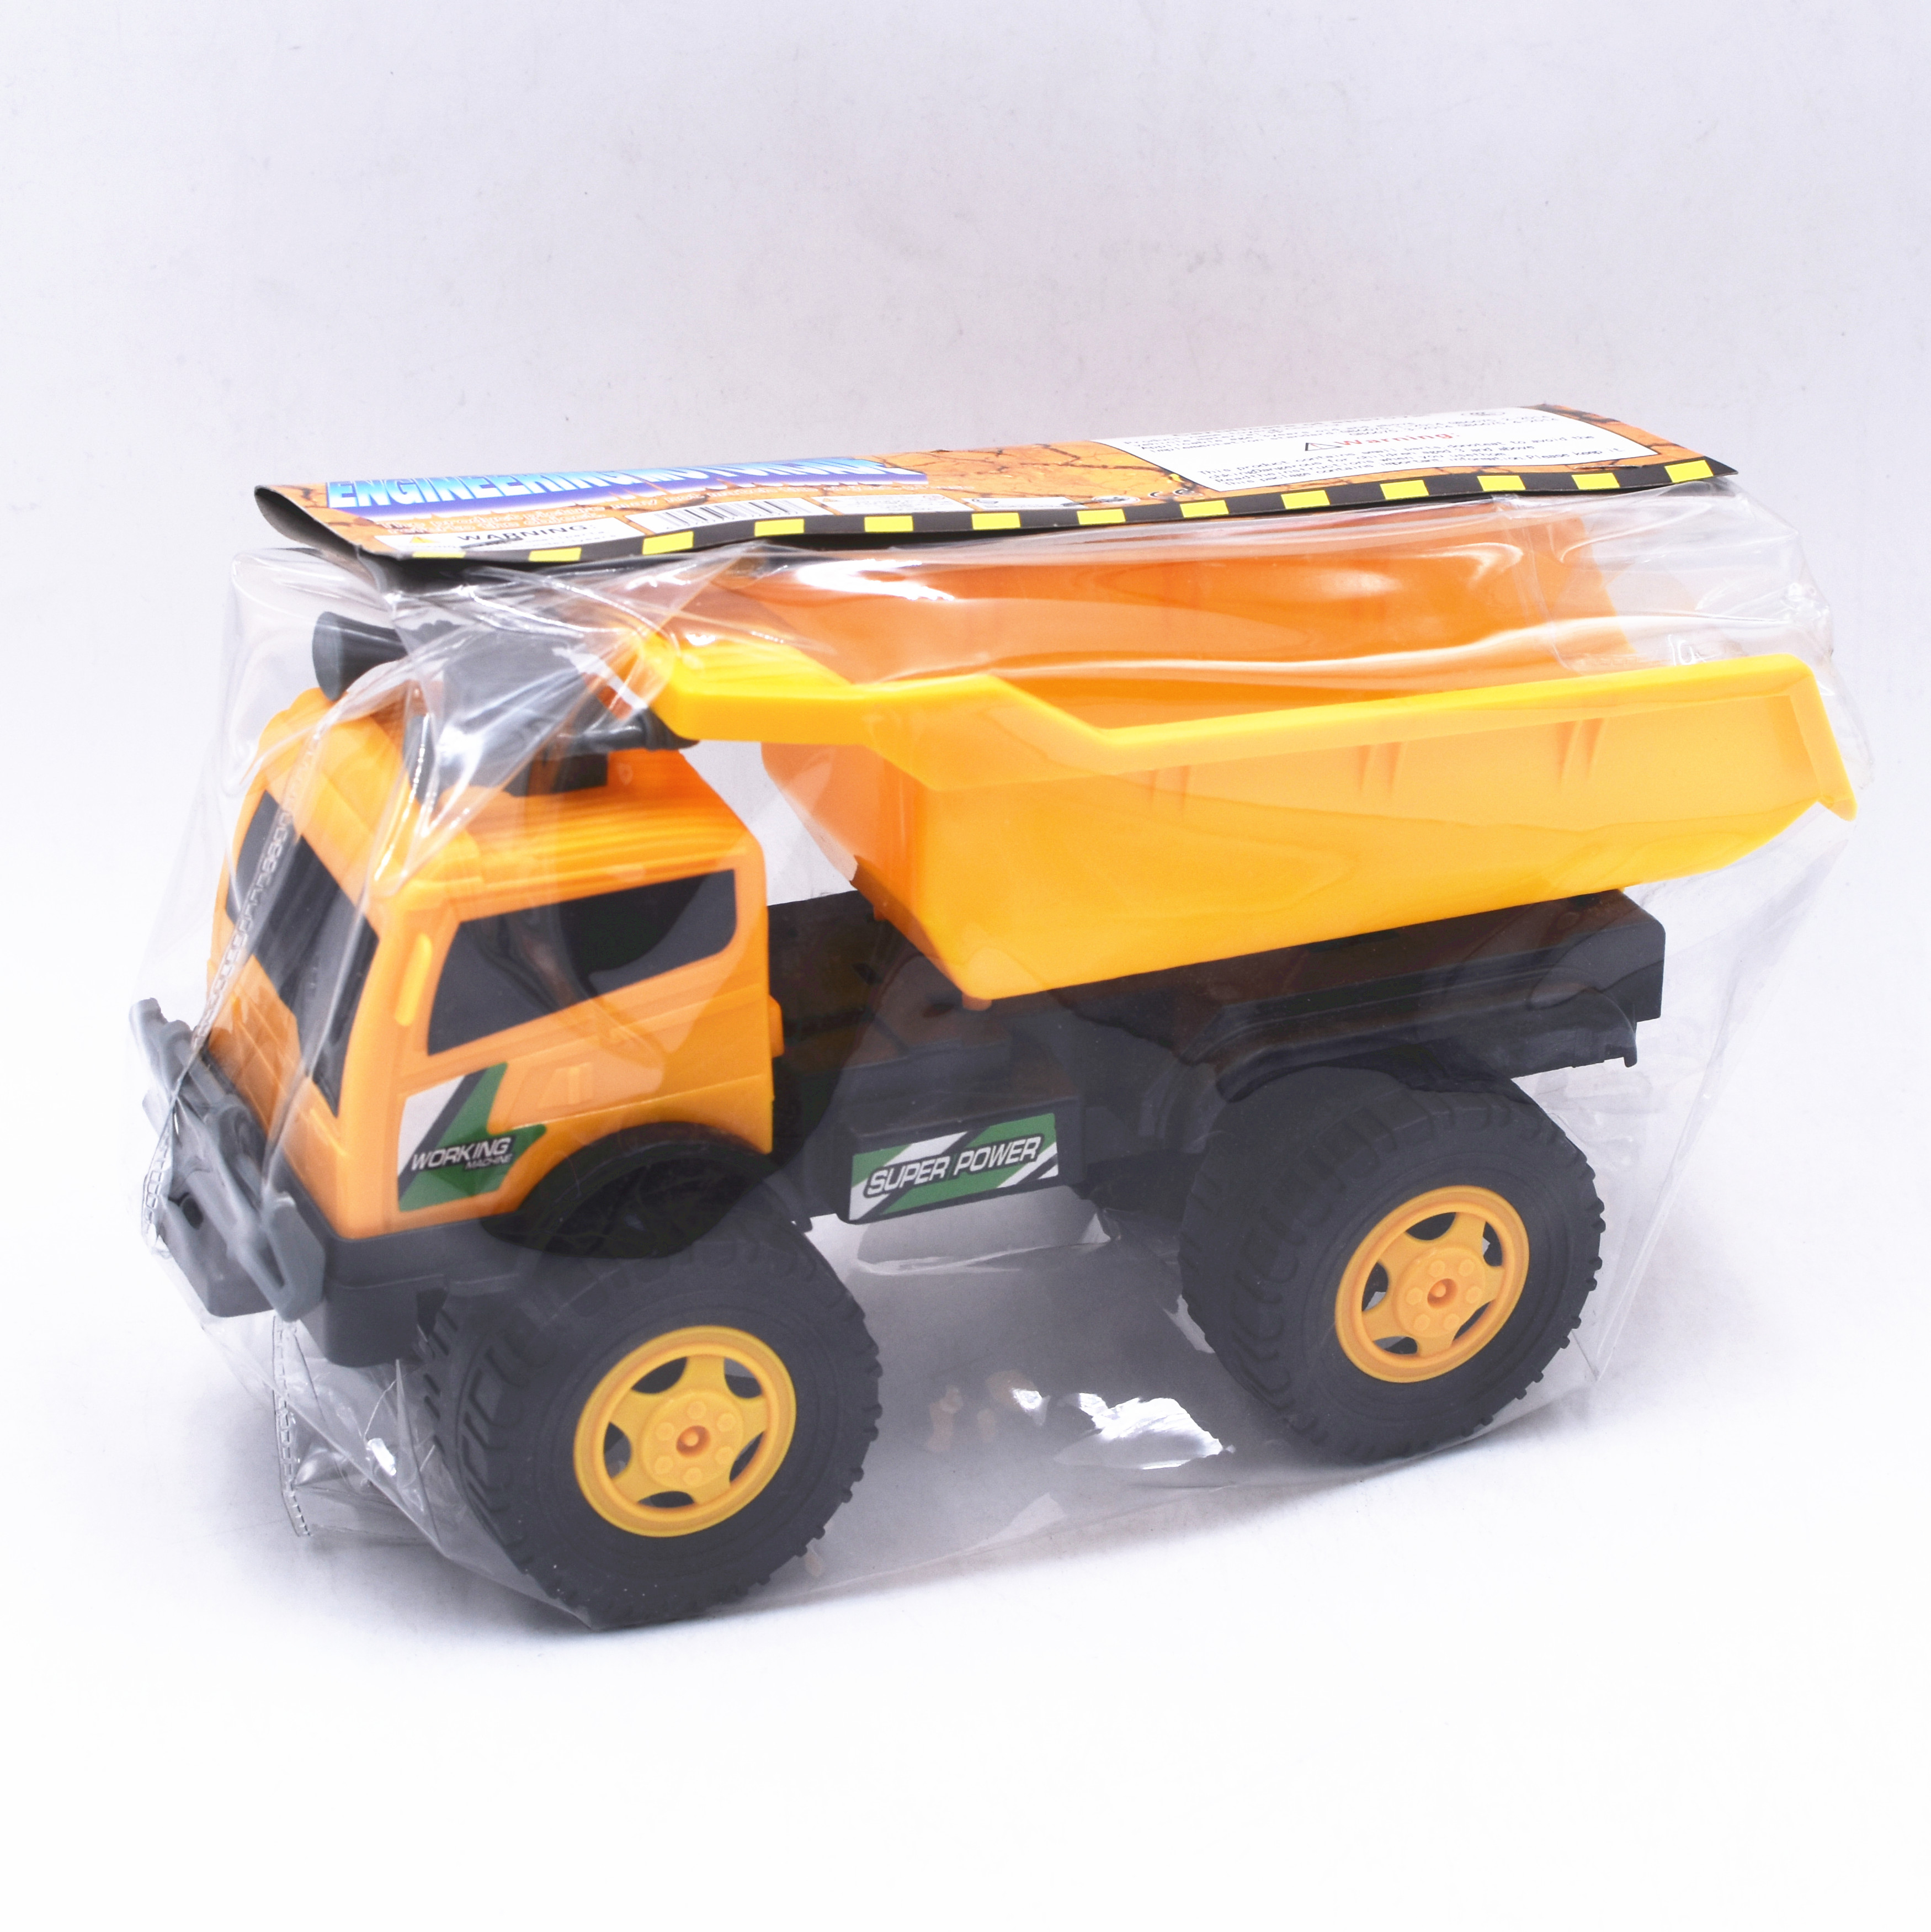 FREE WHEEL TRUCK TOY LY1770